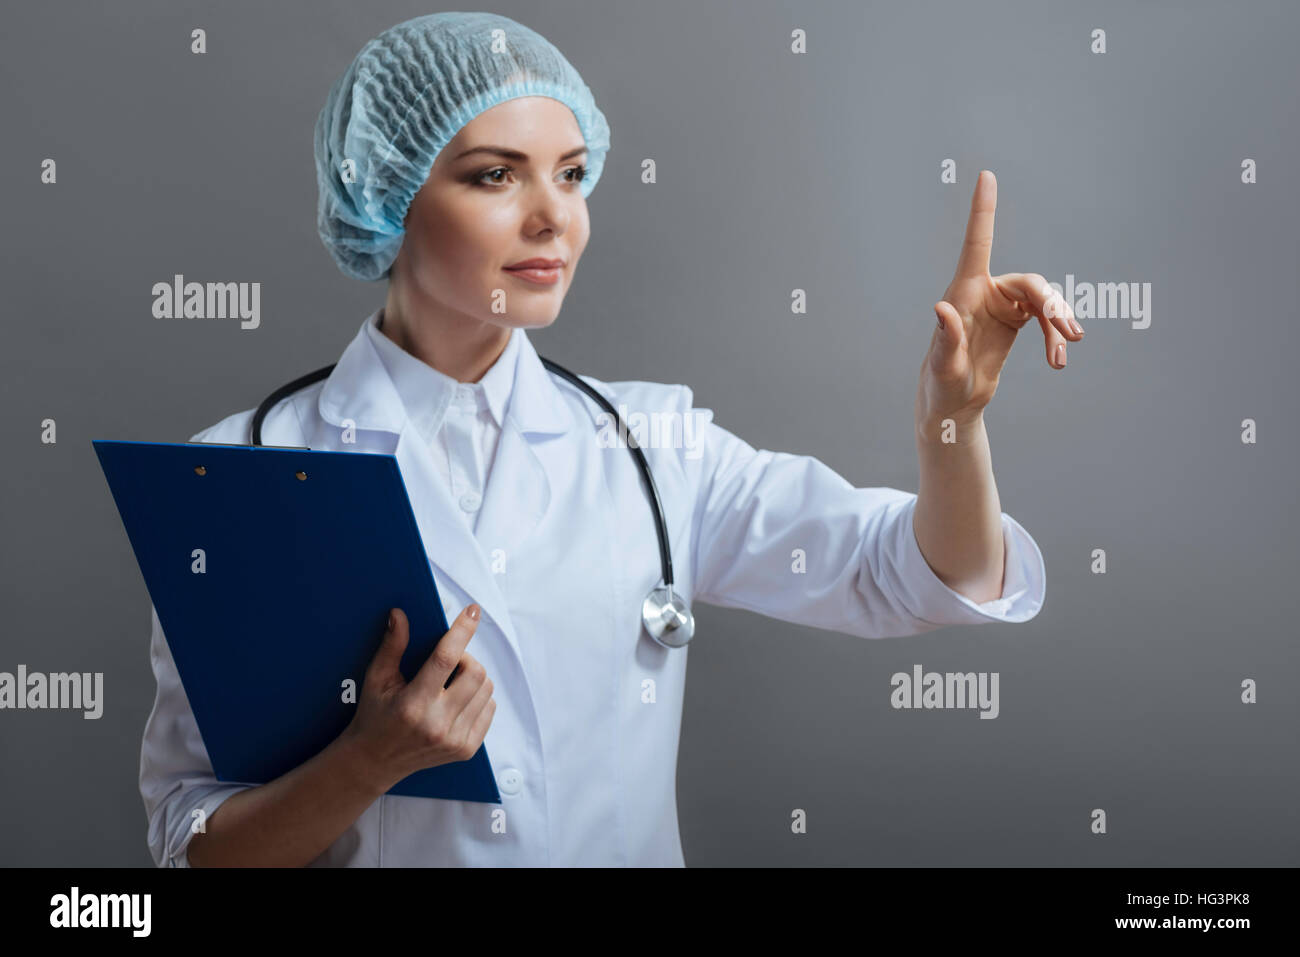 Female doctor holding medical documents - Stock Image